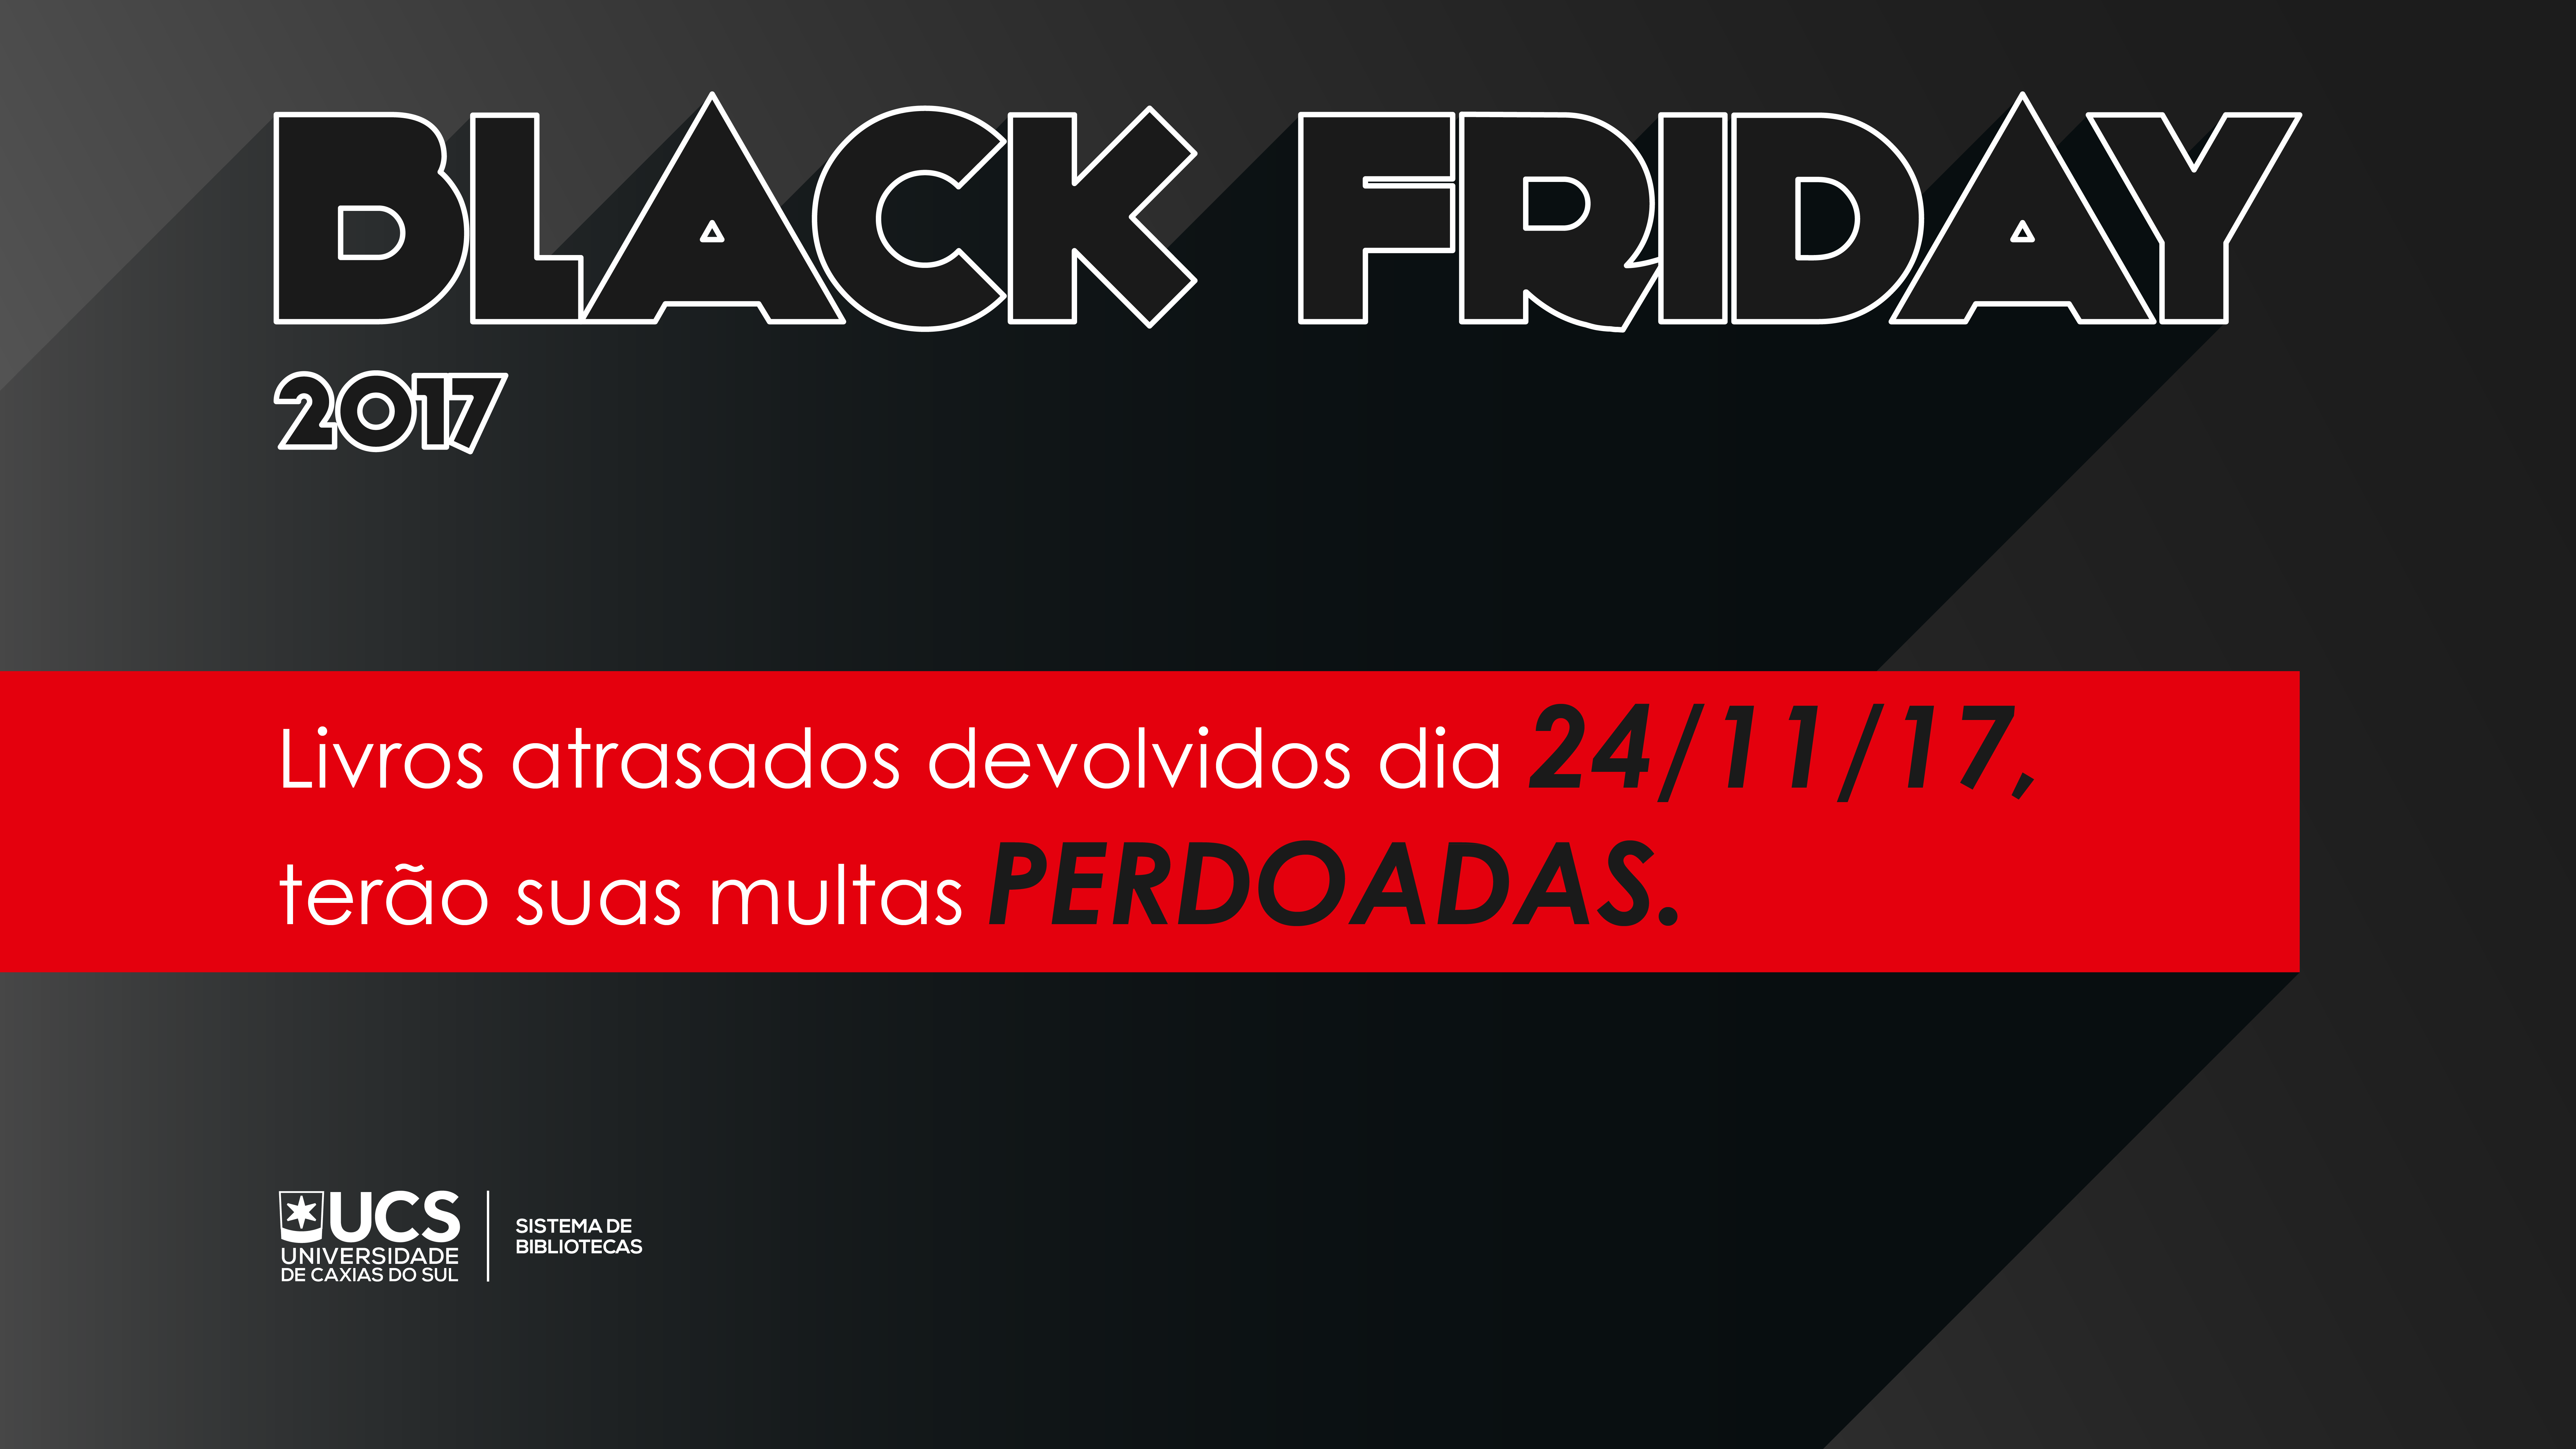 BLACK FRIDAY 2017-07